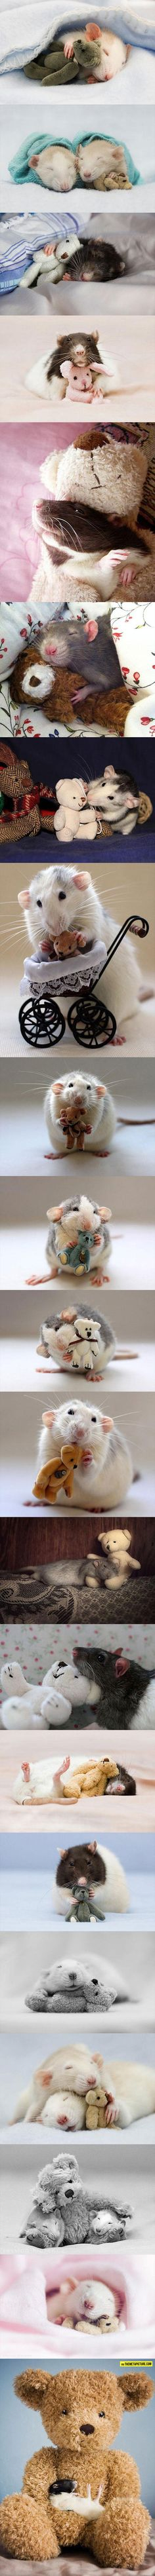 Cute Rats With Cozy Teddy Bears